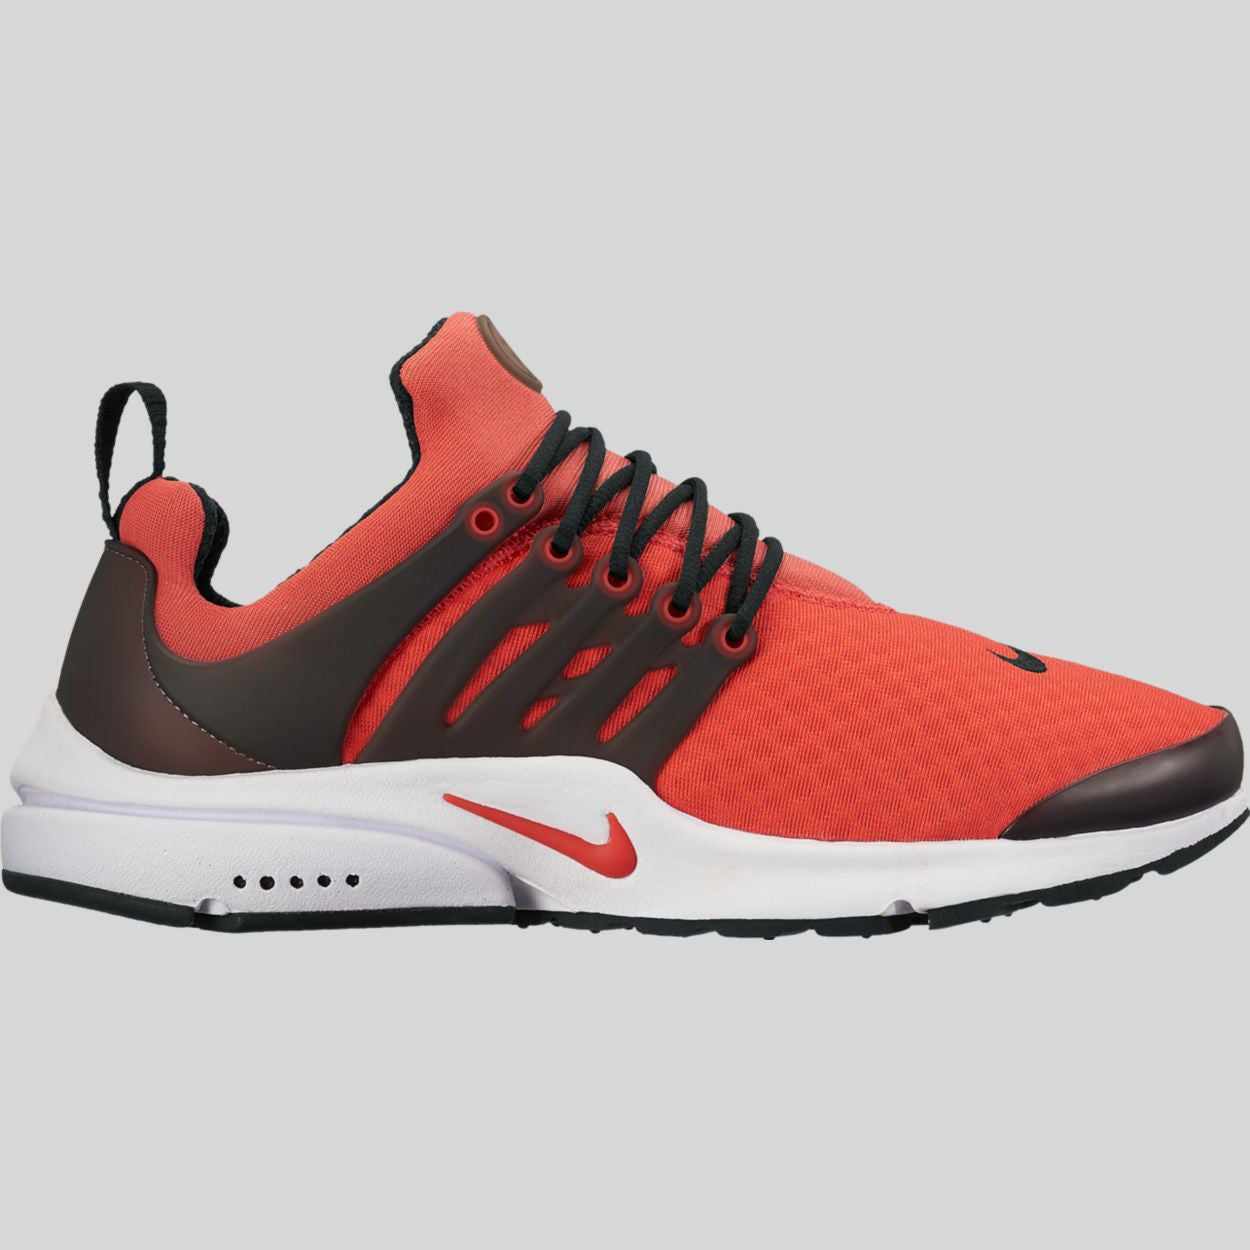 7c40f8a868dc Nike Air Presto Essential Track Red Black Summit White (848187-600 ...